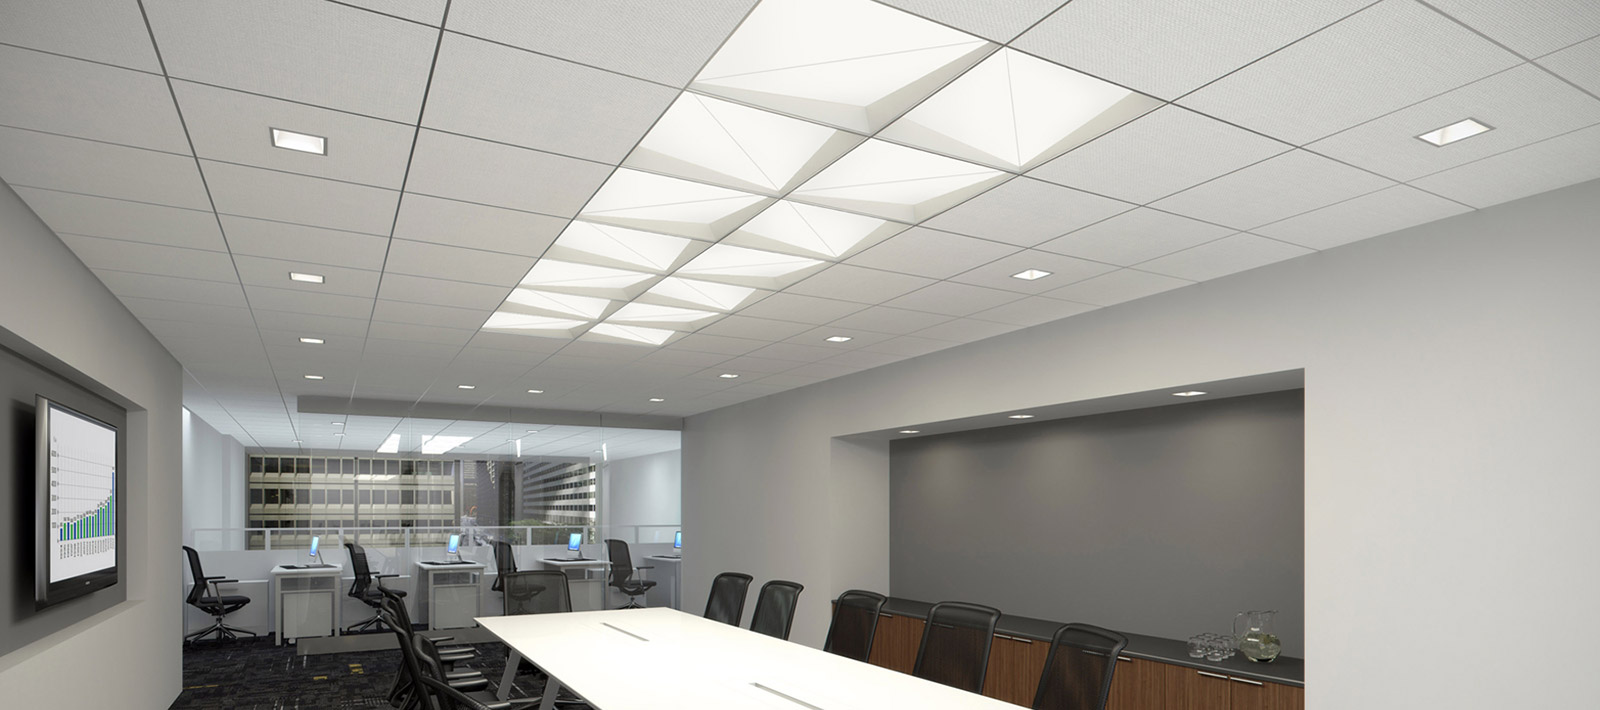 Conference Room & Conference Room | Focal Point Lights azcodes.com